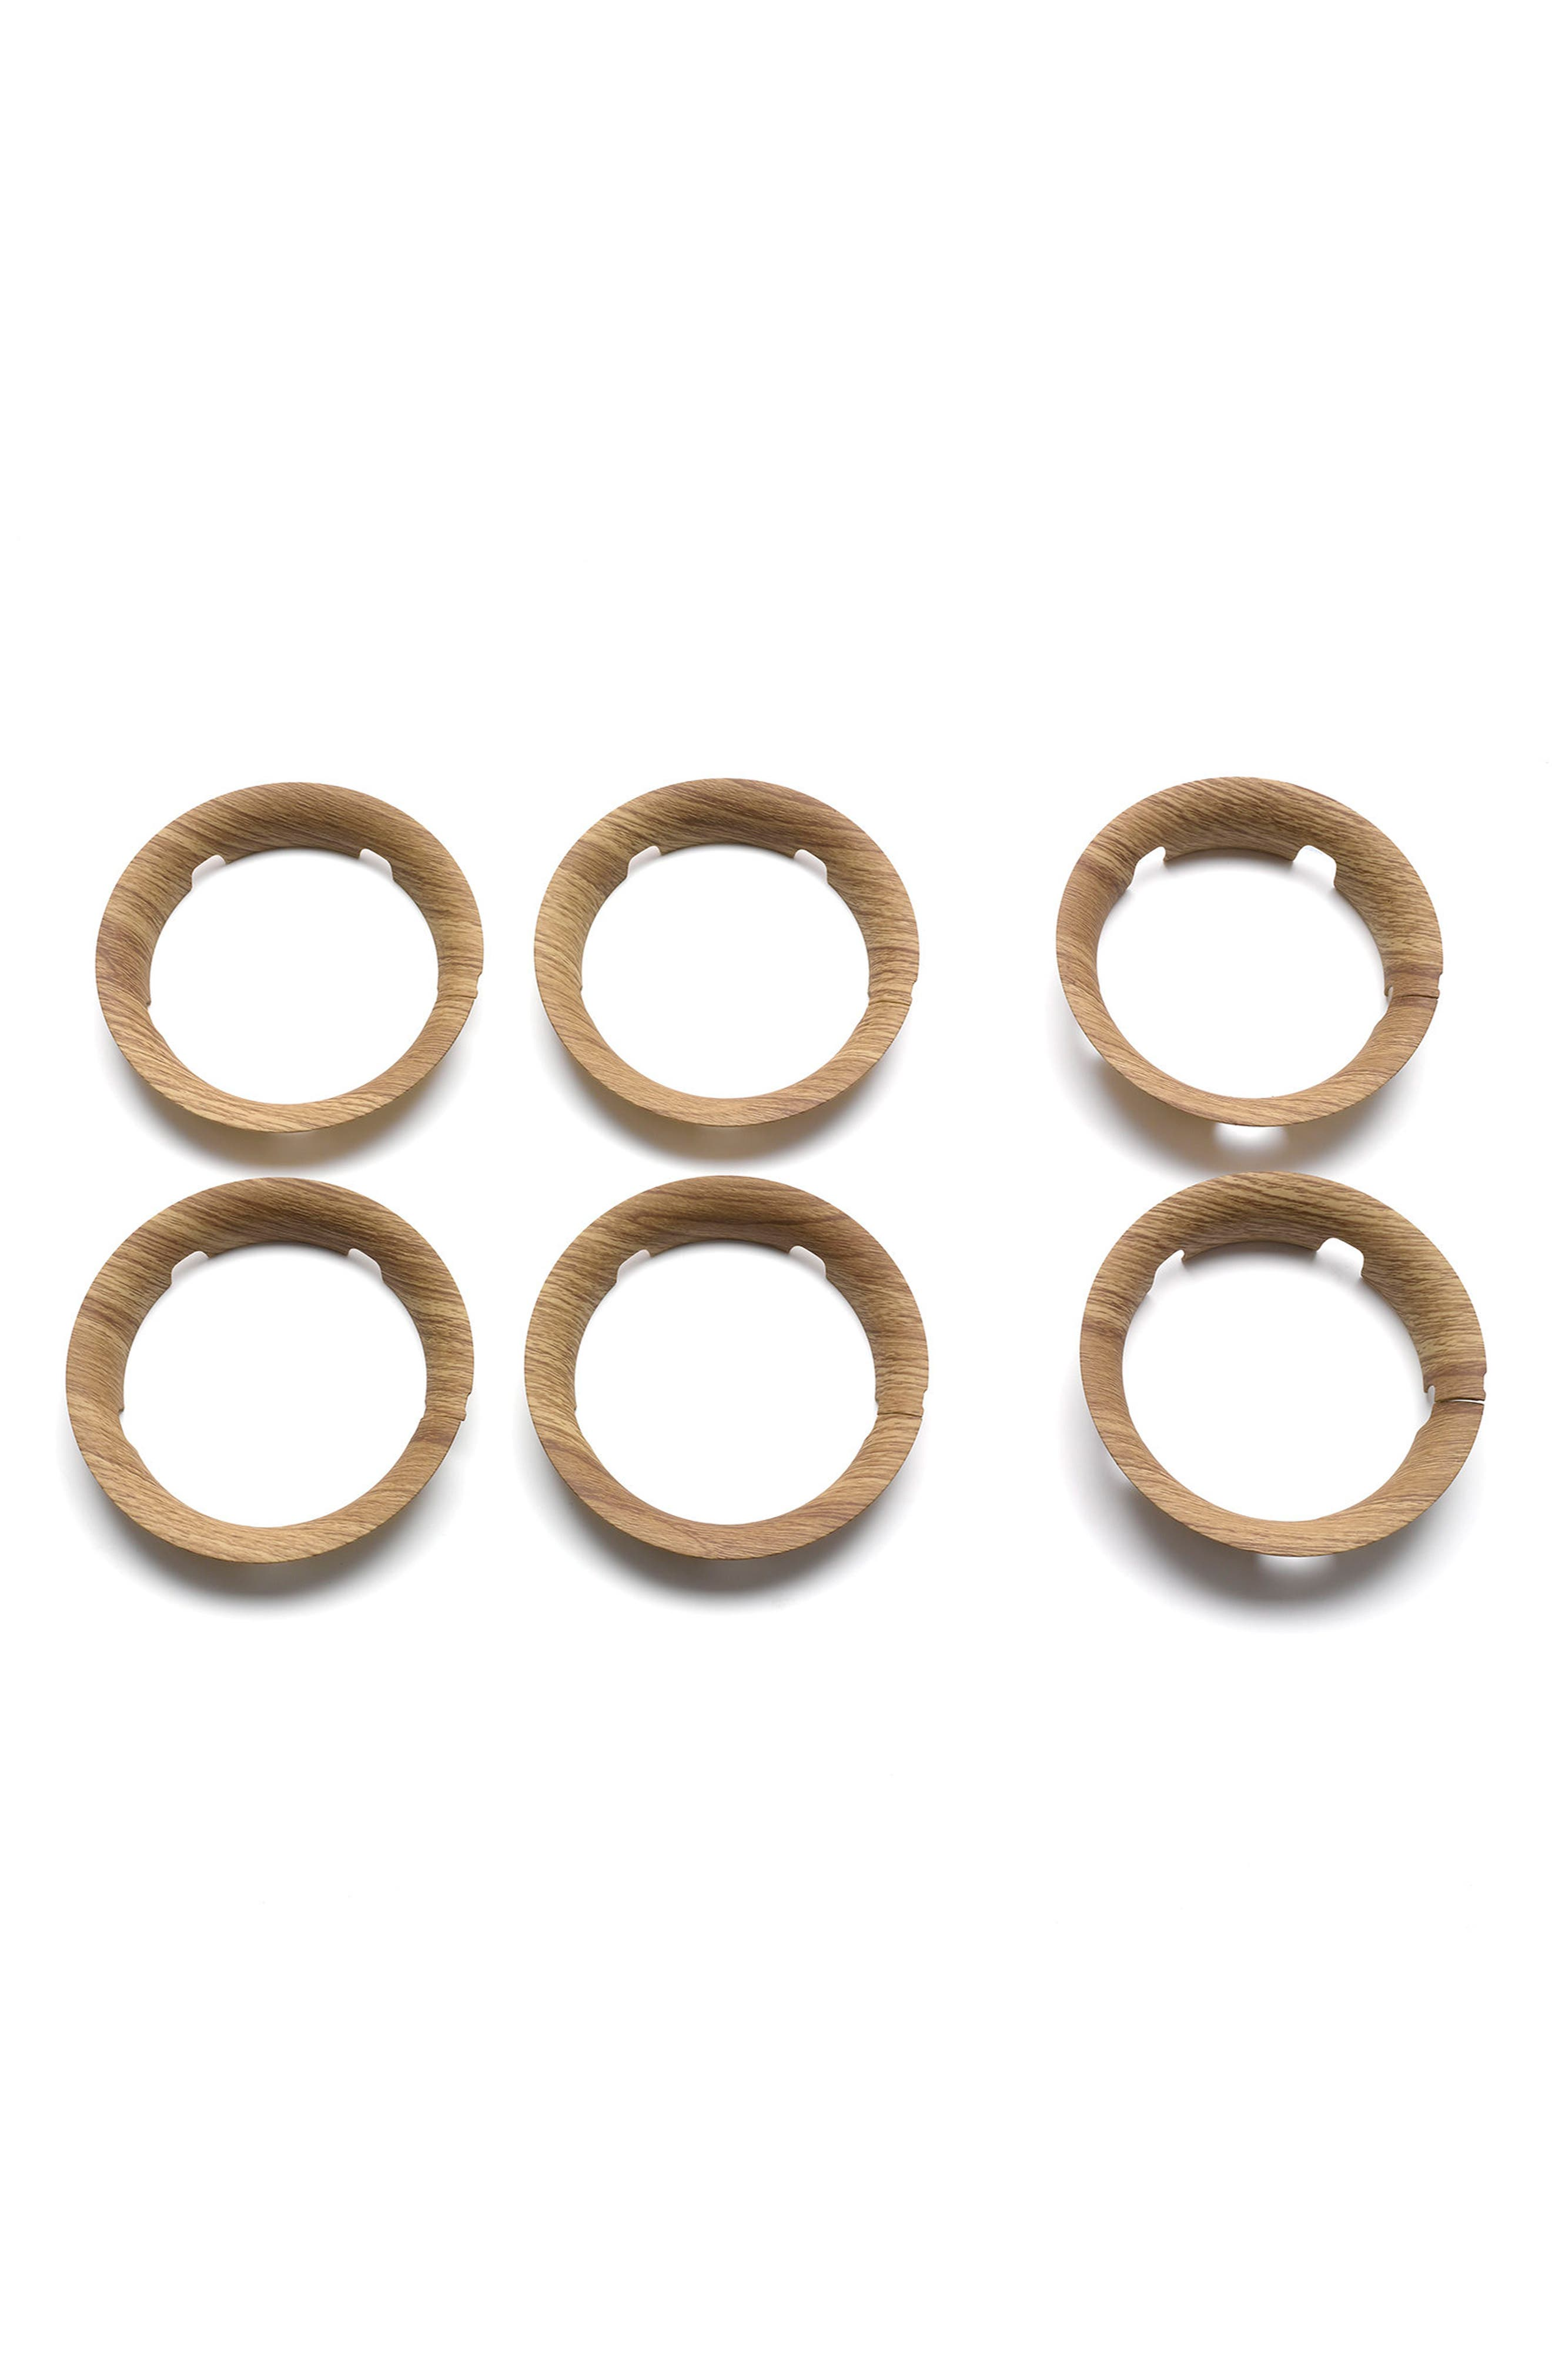 Set of Wheel Caps for Bugaboo Bee5 Stroller,                         Main,                         color, Wood